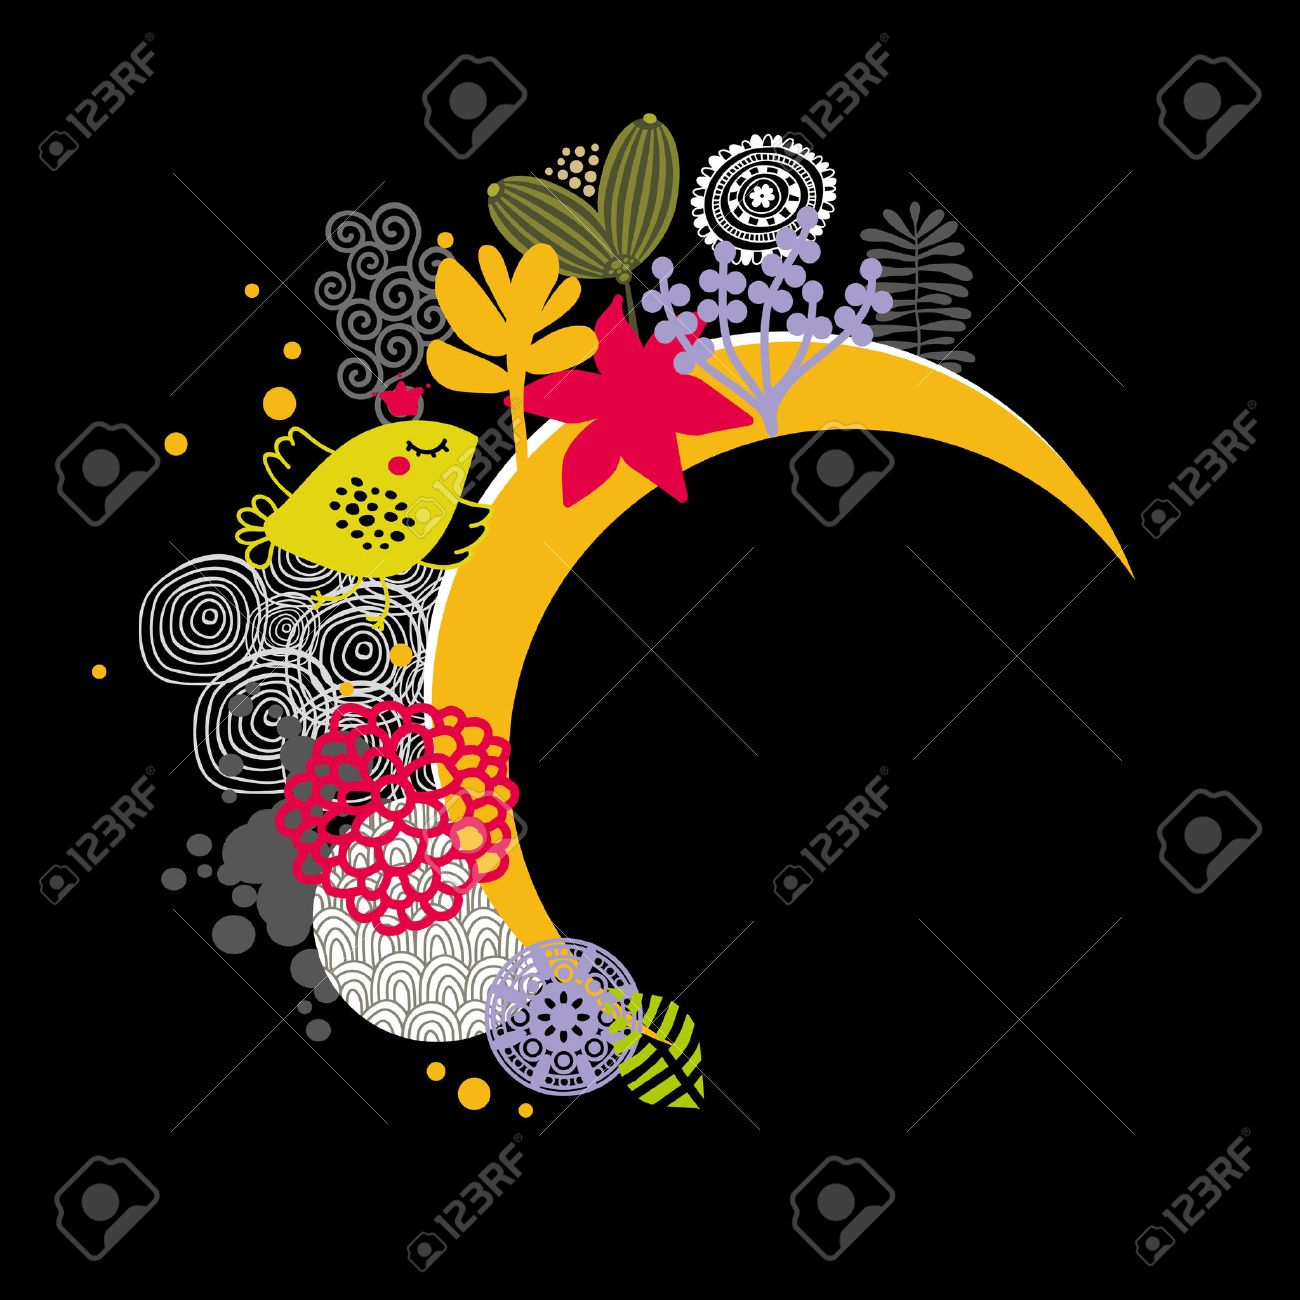 Good Night Banner Vector Illustration With Birds And Flowers Stock